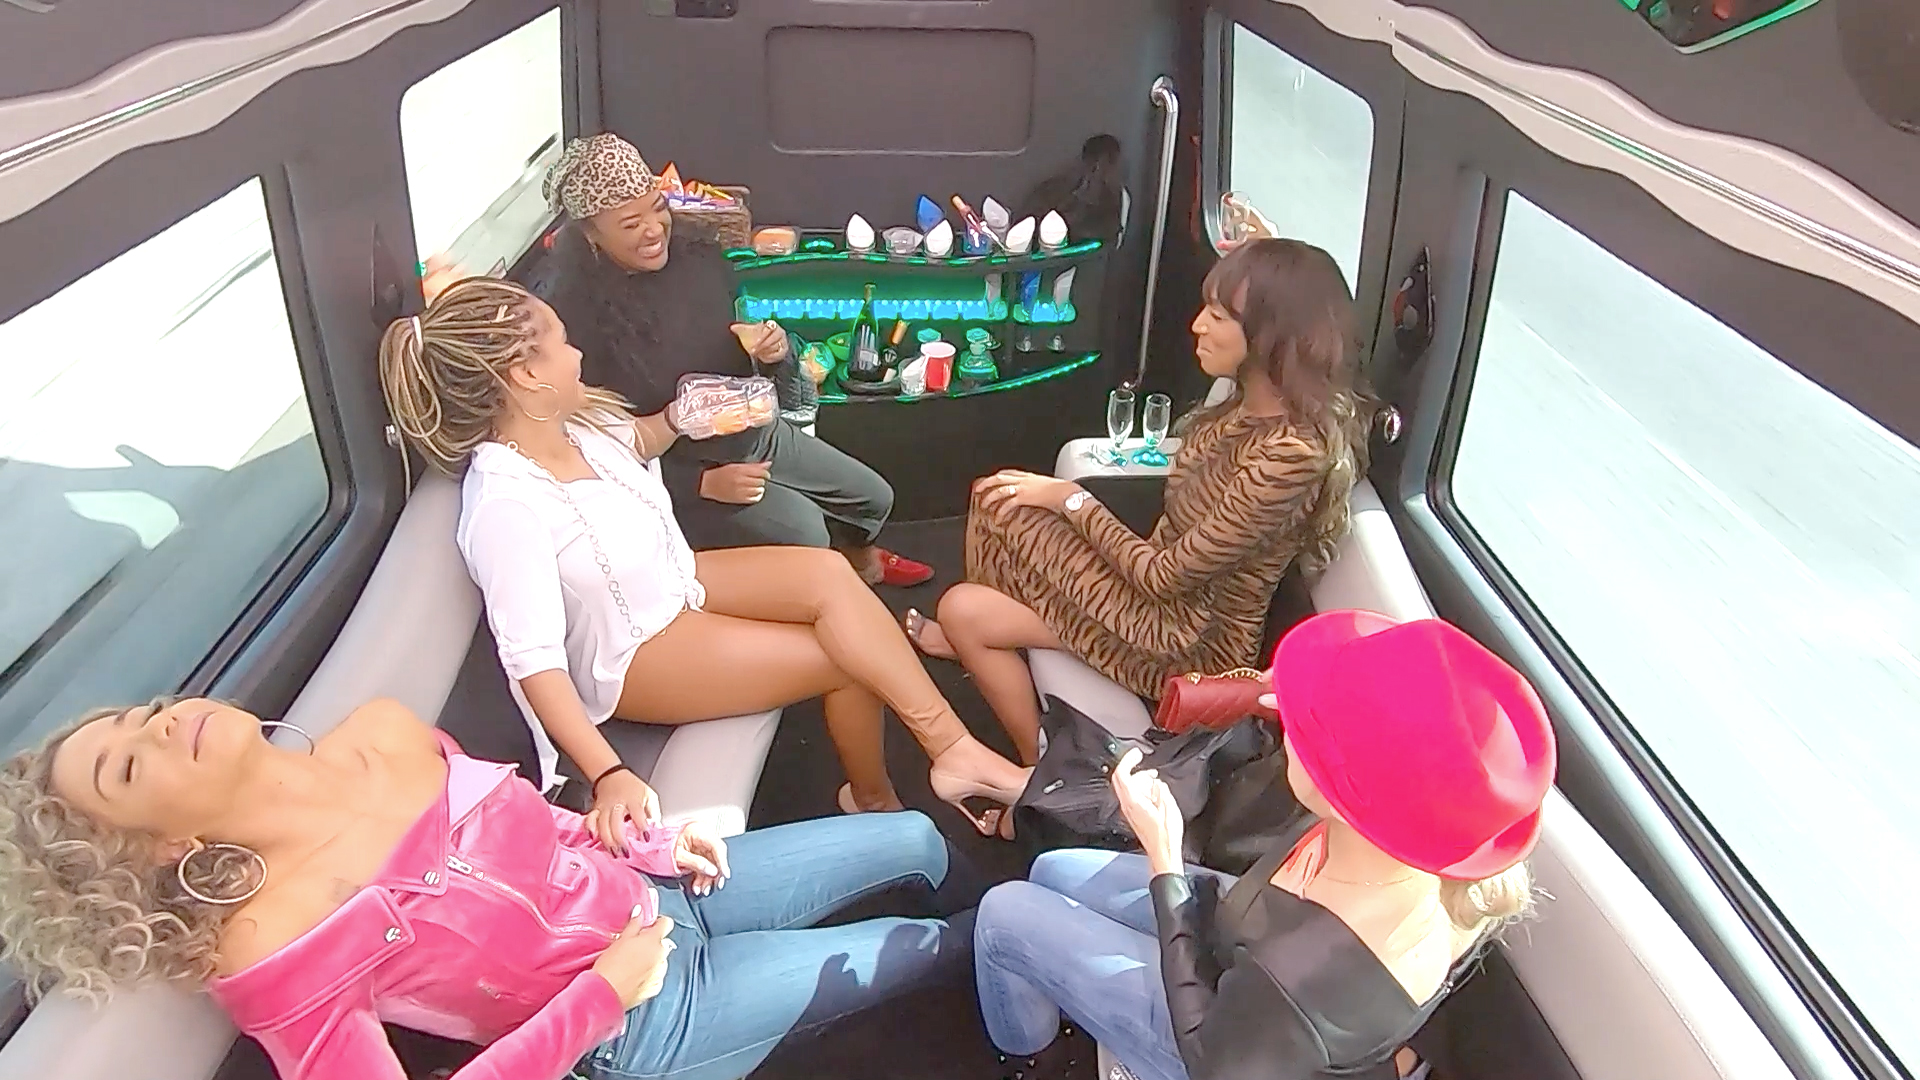 The Ladies Get Lit On a Party Bus